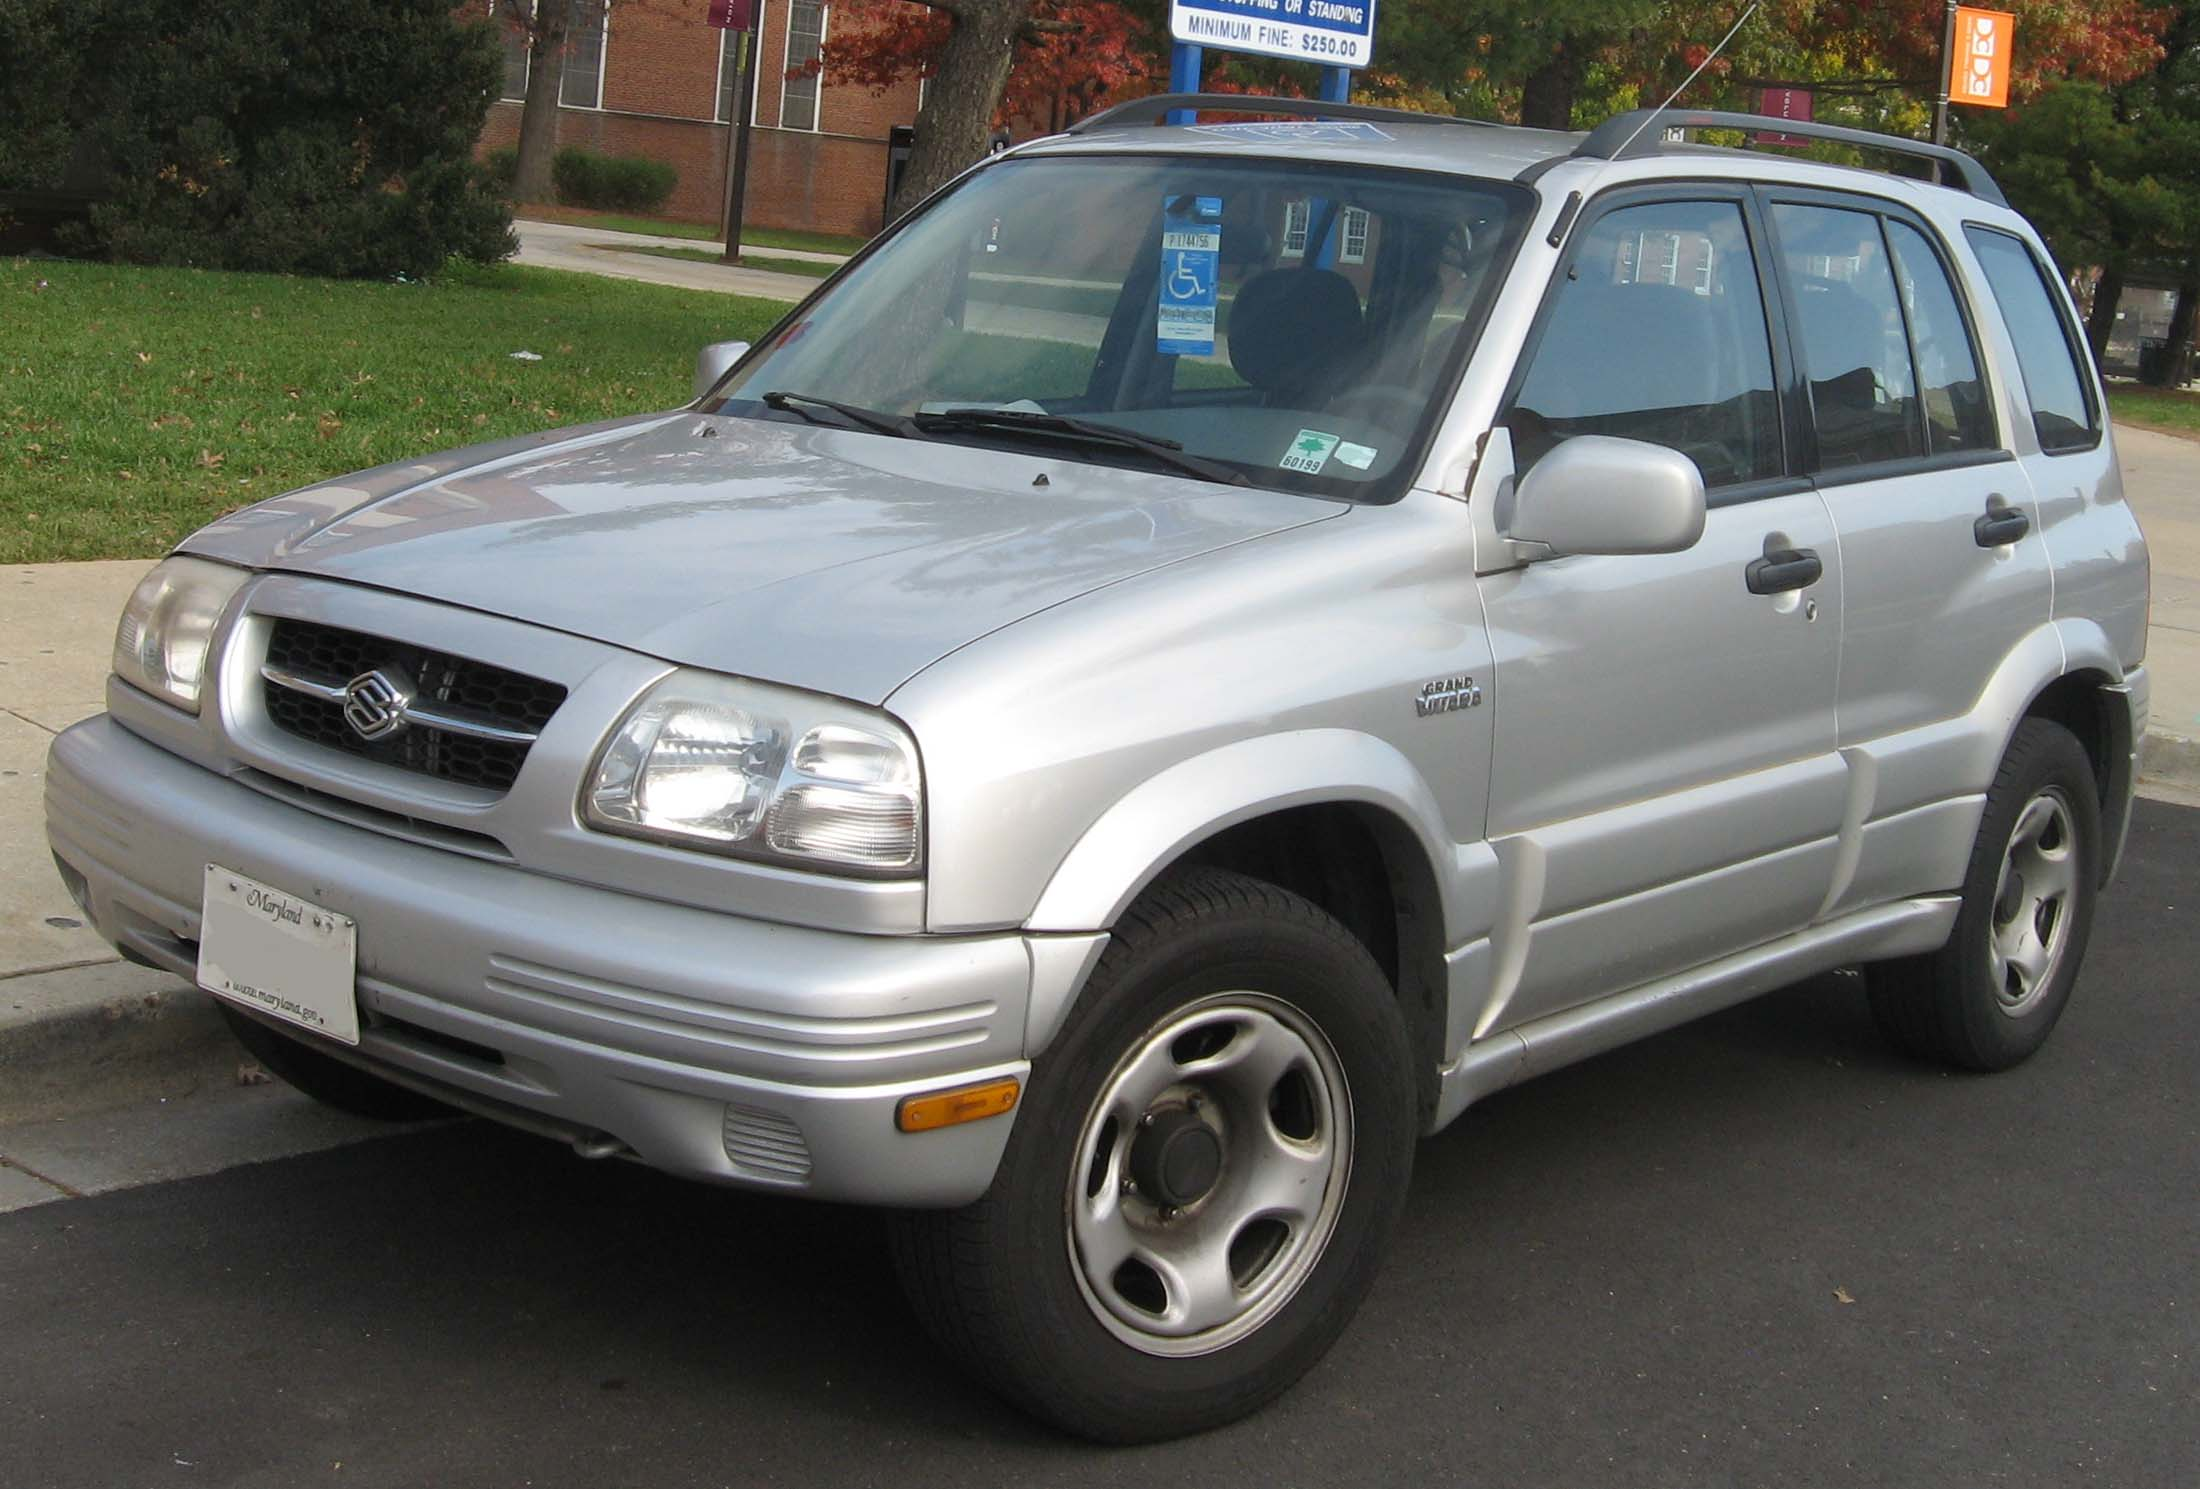 File:99-01 Suzuki Grand Vitara.jpg - Wikipedia